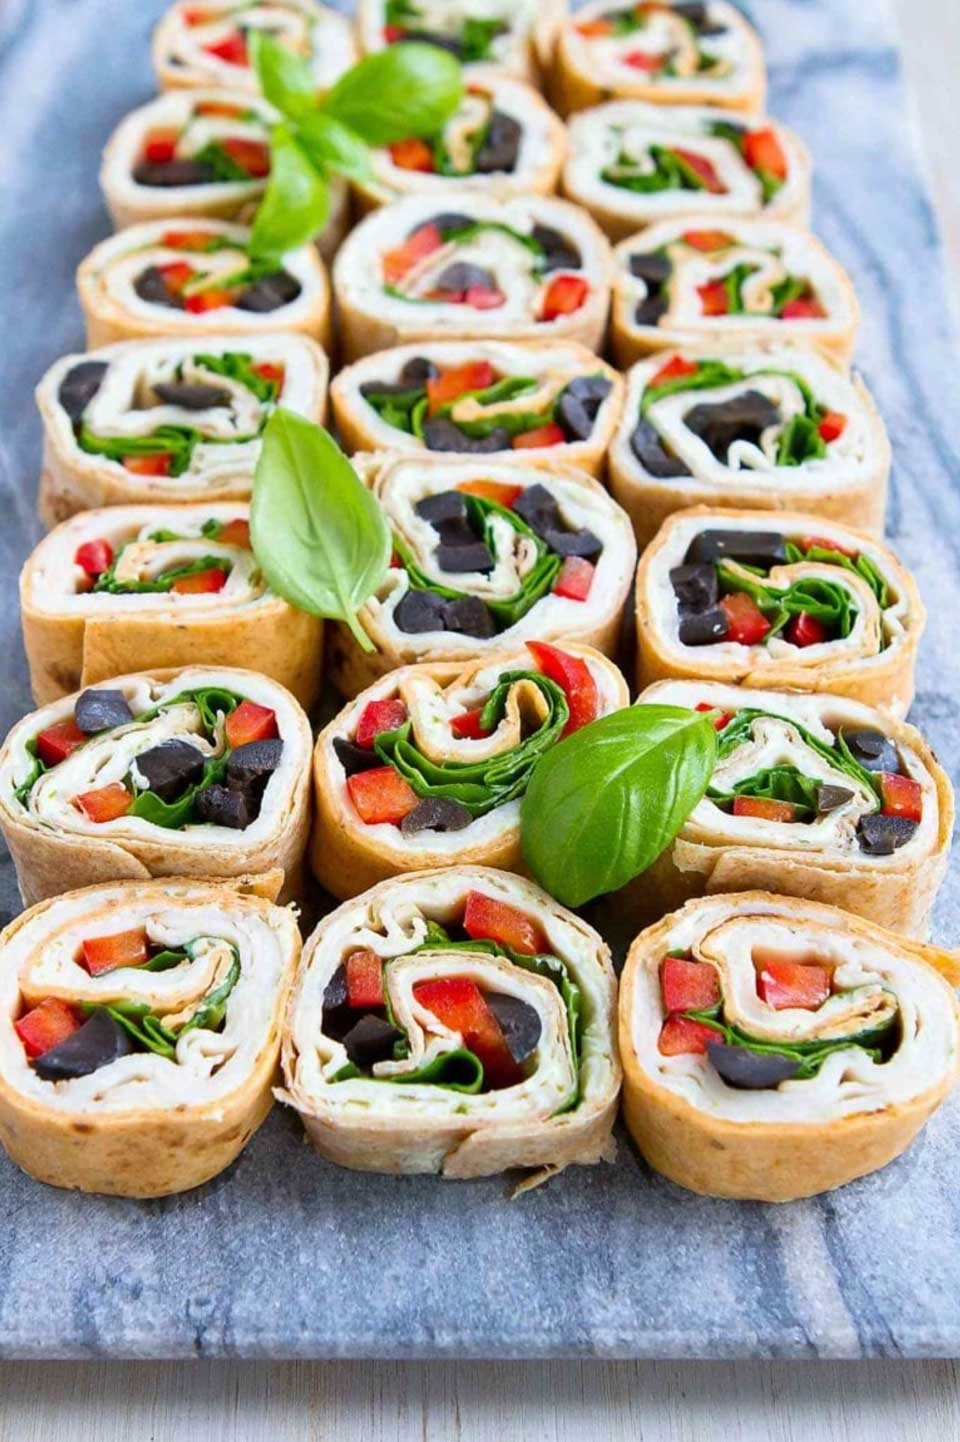 21 roll ups in 3 long rows on a marble serving tray, scattered with basil leaves for garnish.